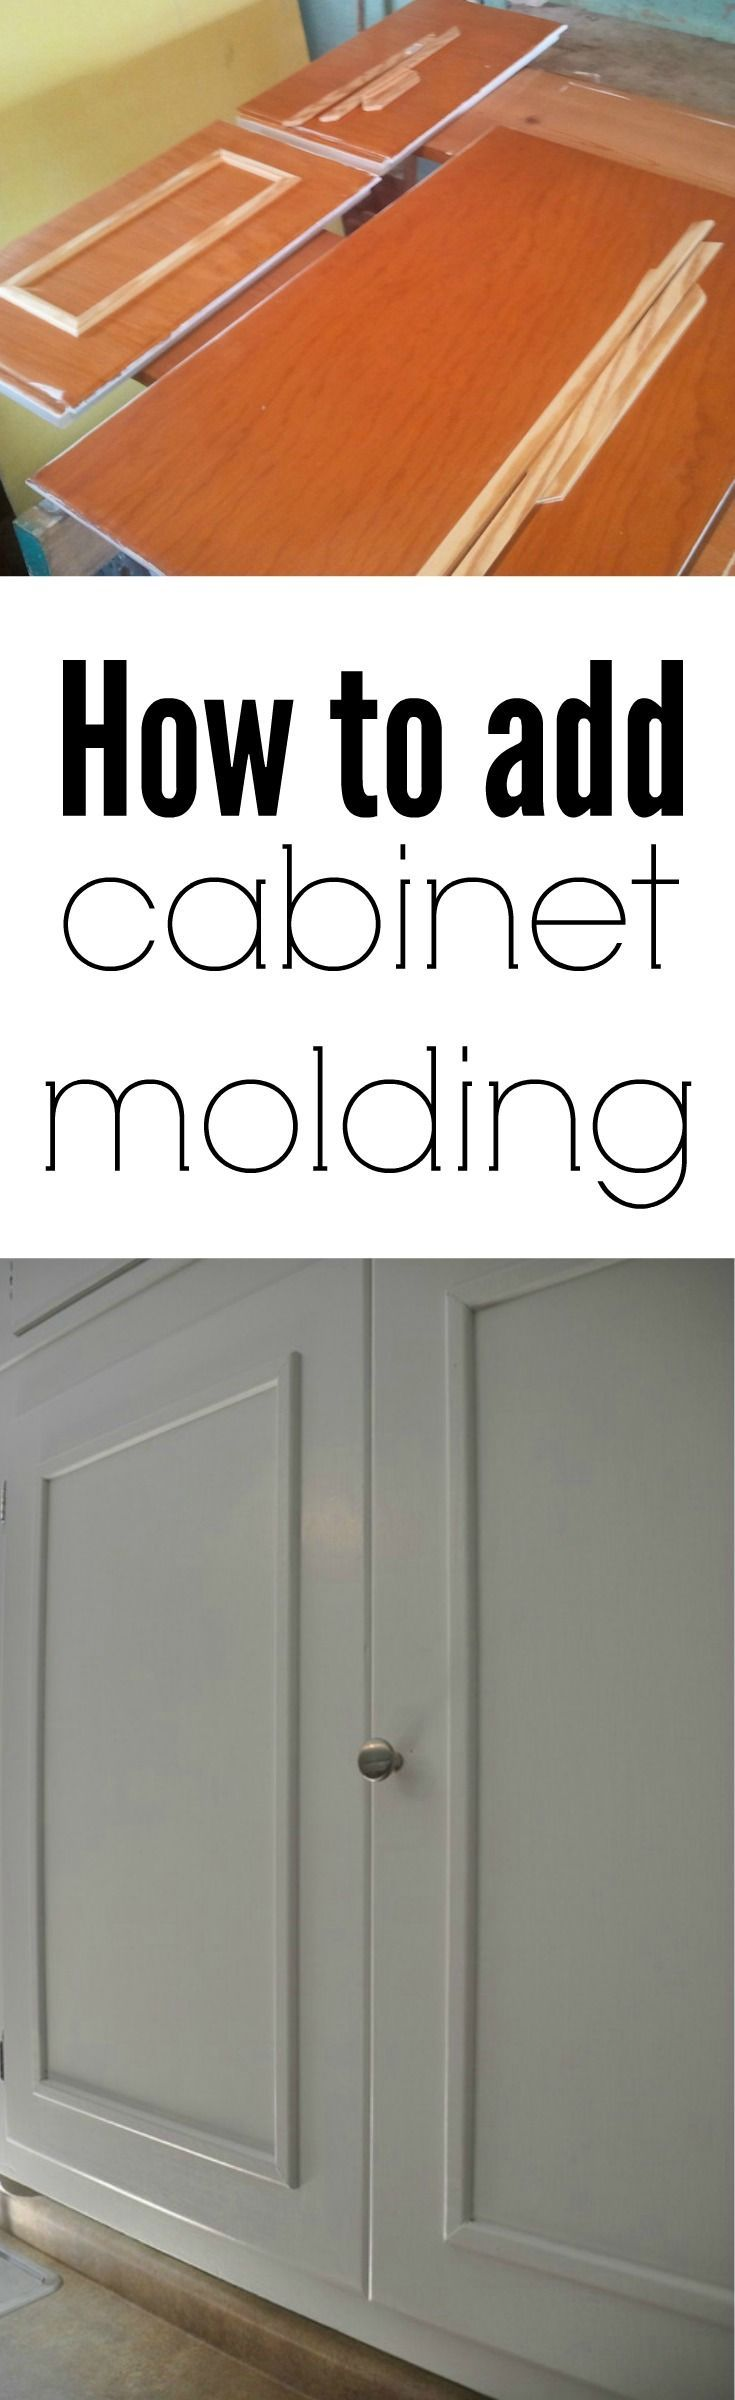 How to add cabinet molding for Adding molding to kitchen cabinets